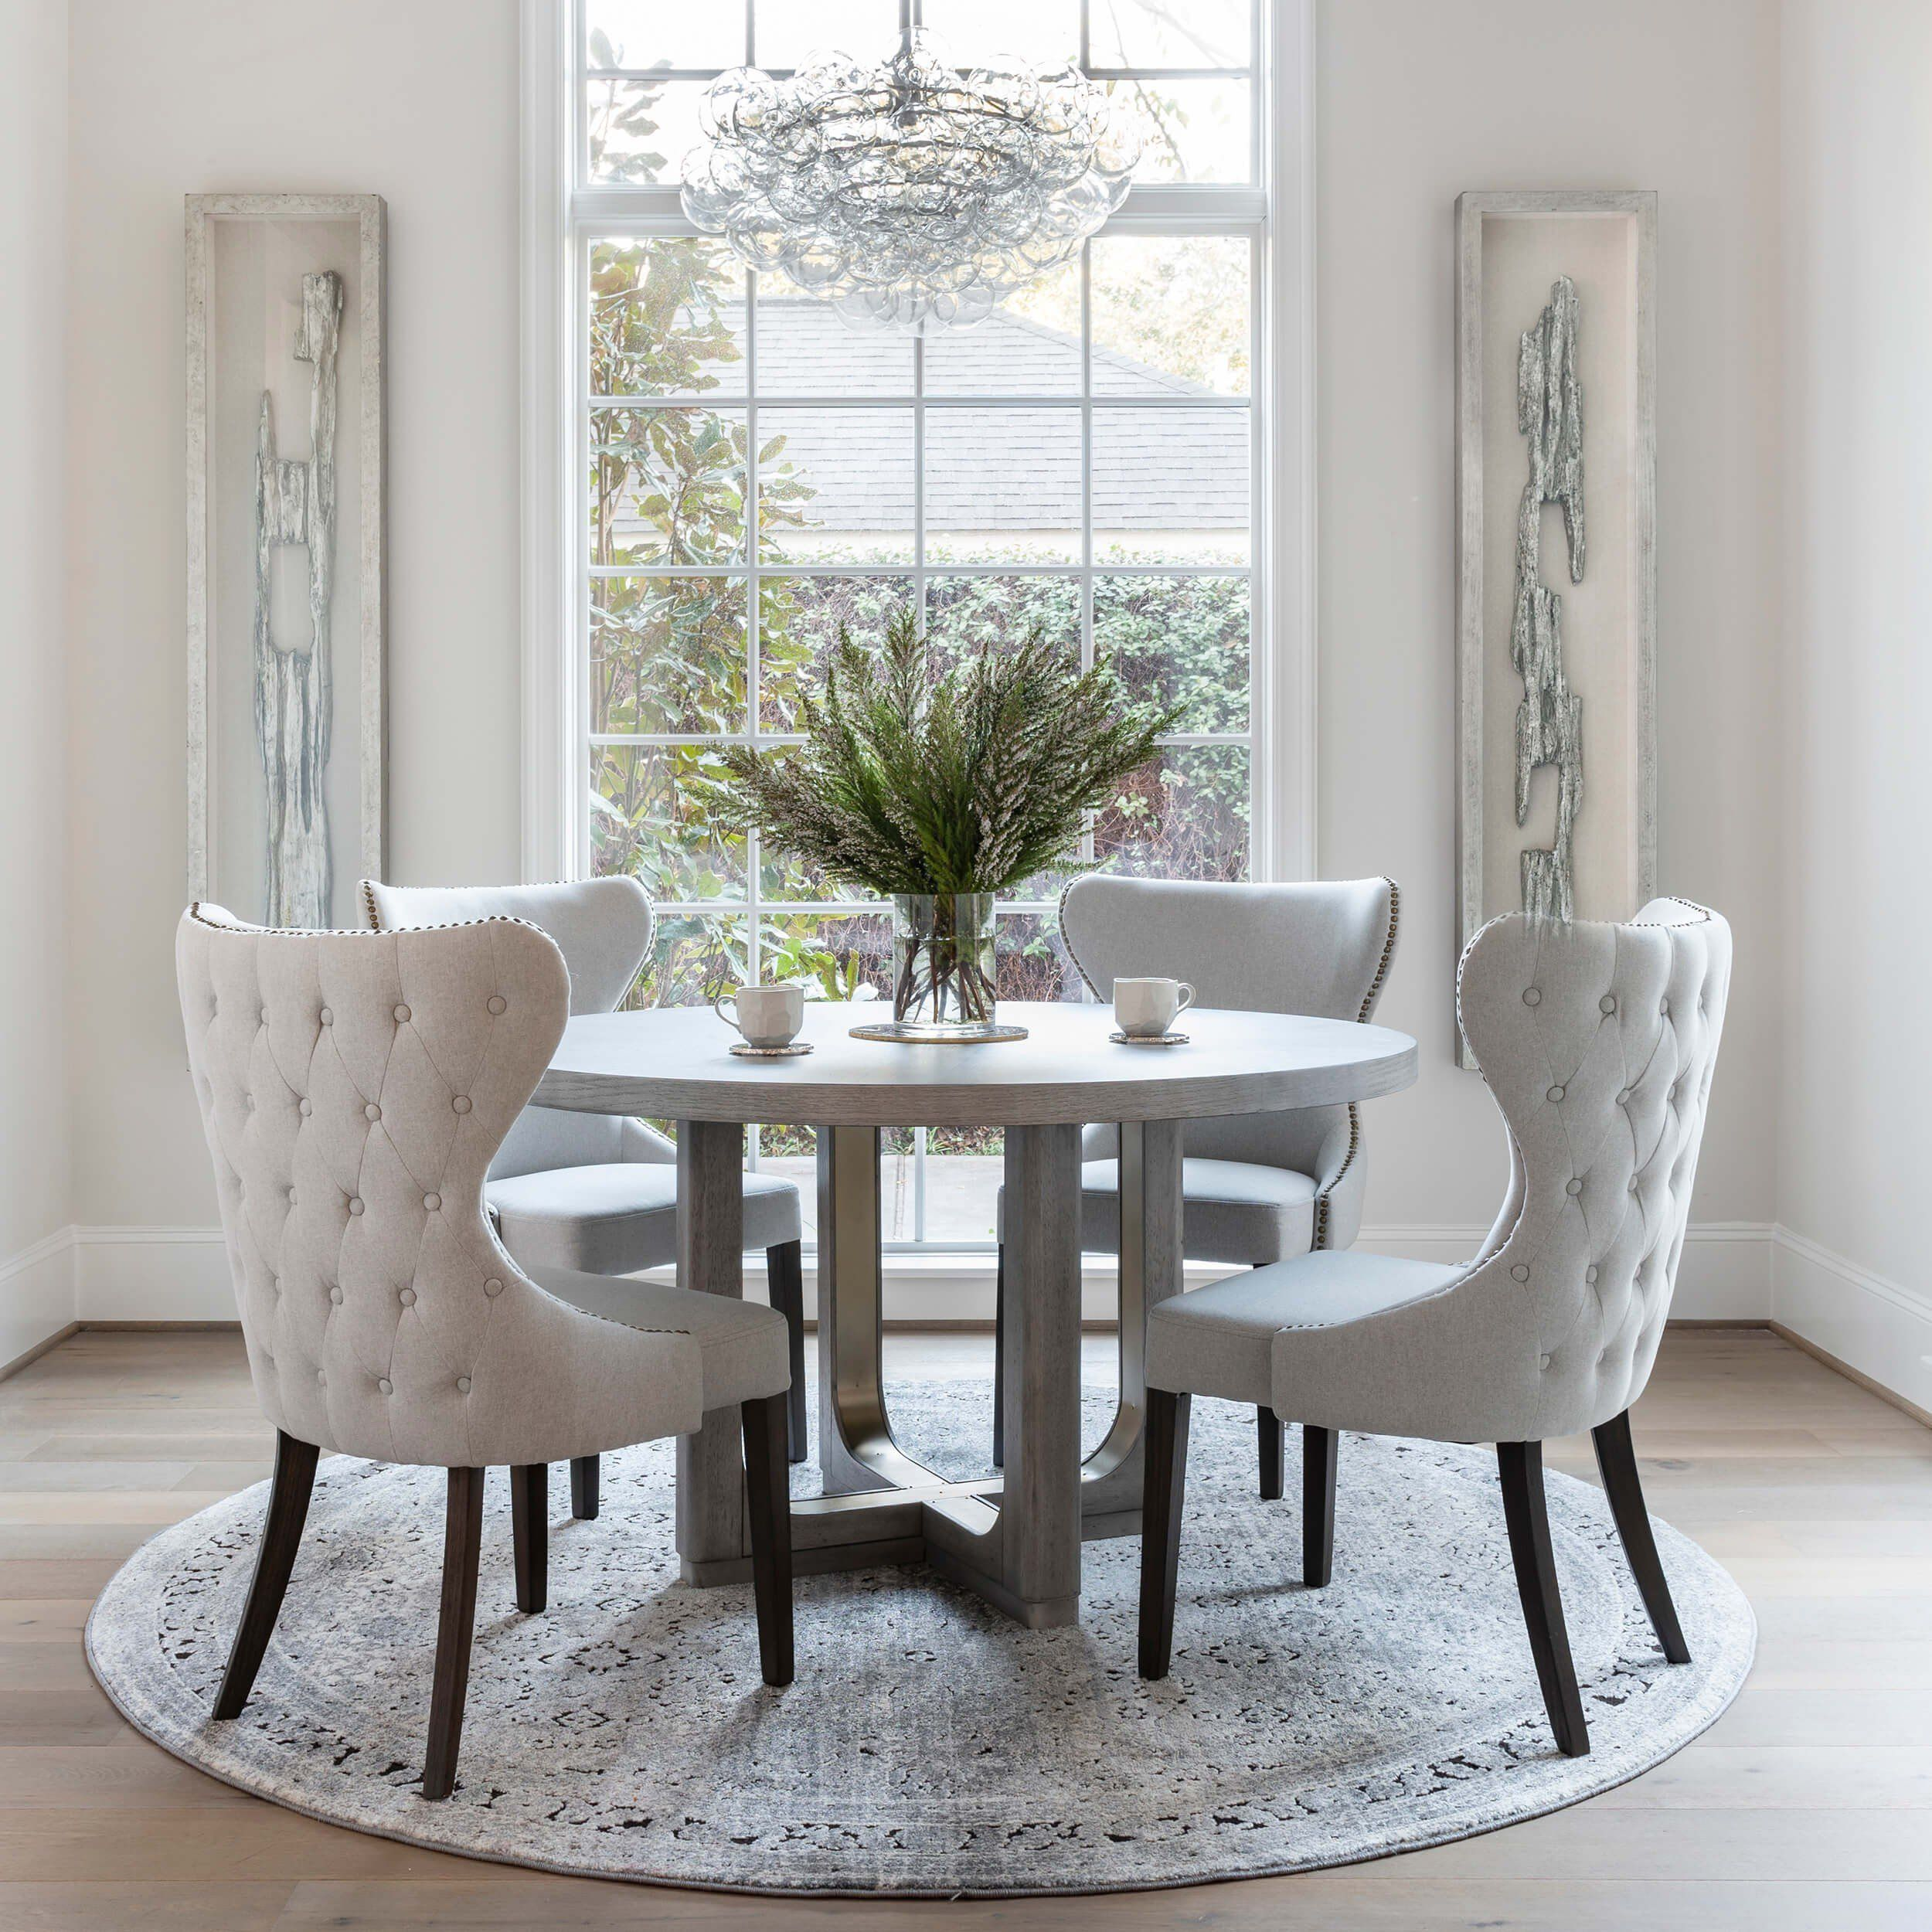 25 Elegant And Exquisite Gray Dining Room Ideas: Ariana Dining Chair, Light Grey, Brass Nailheads In 2020